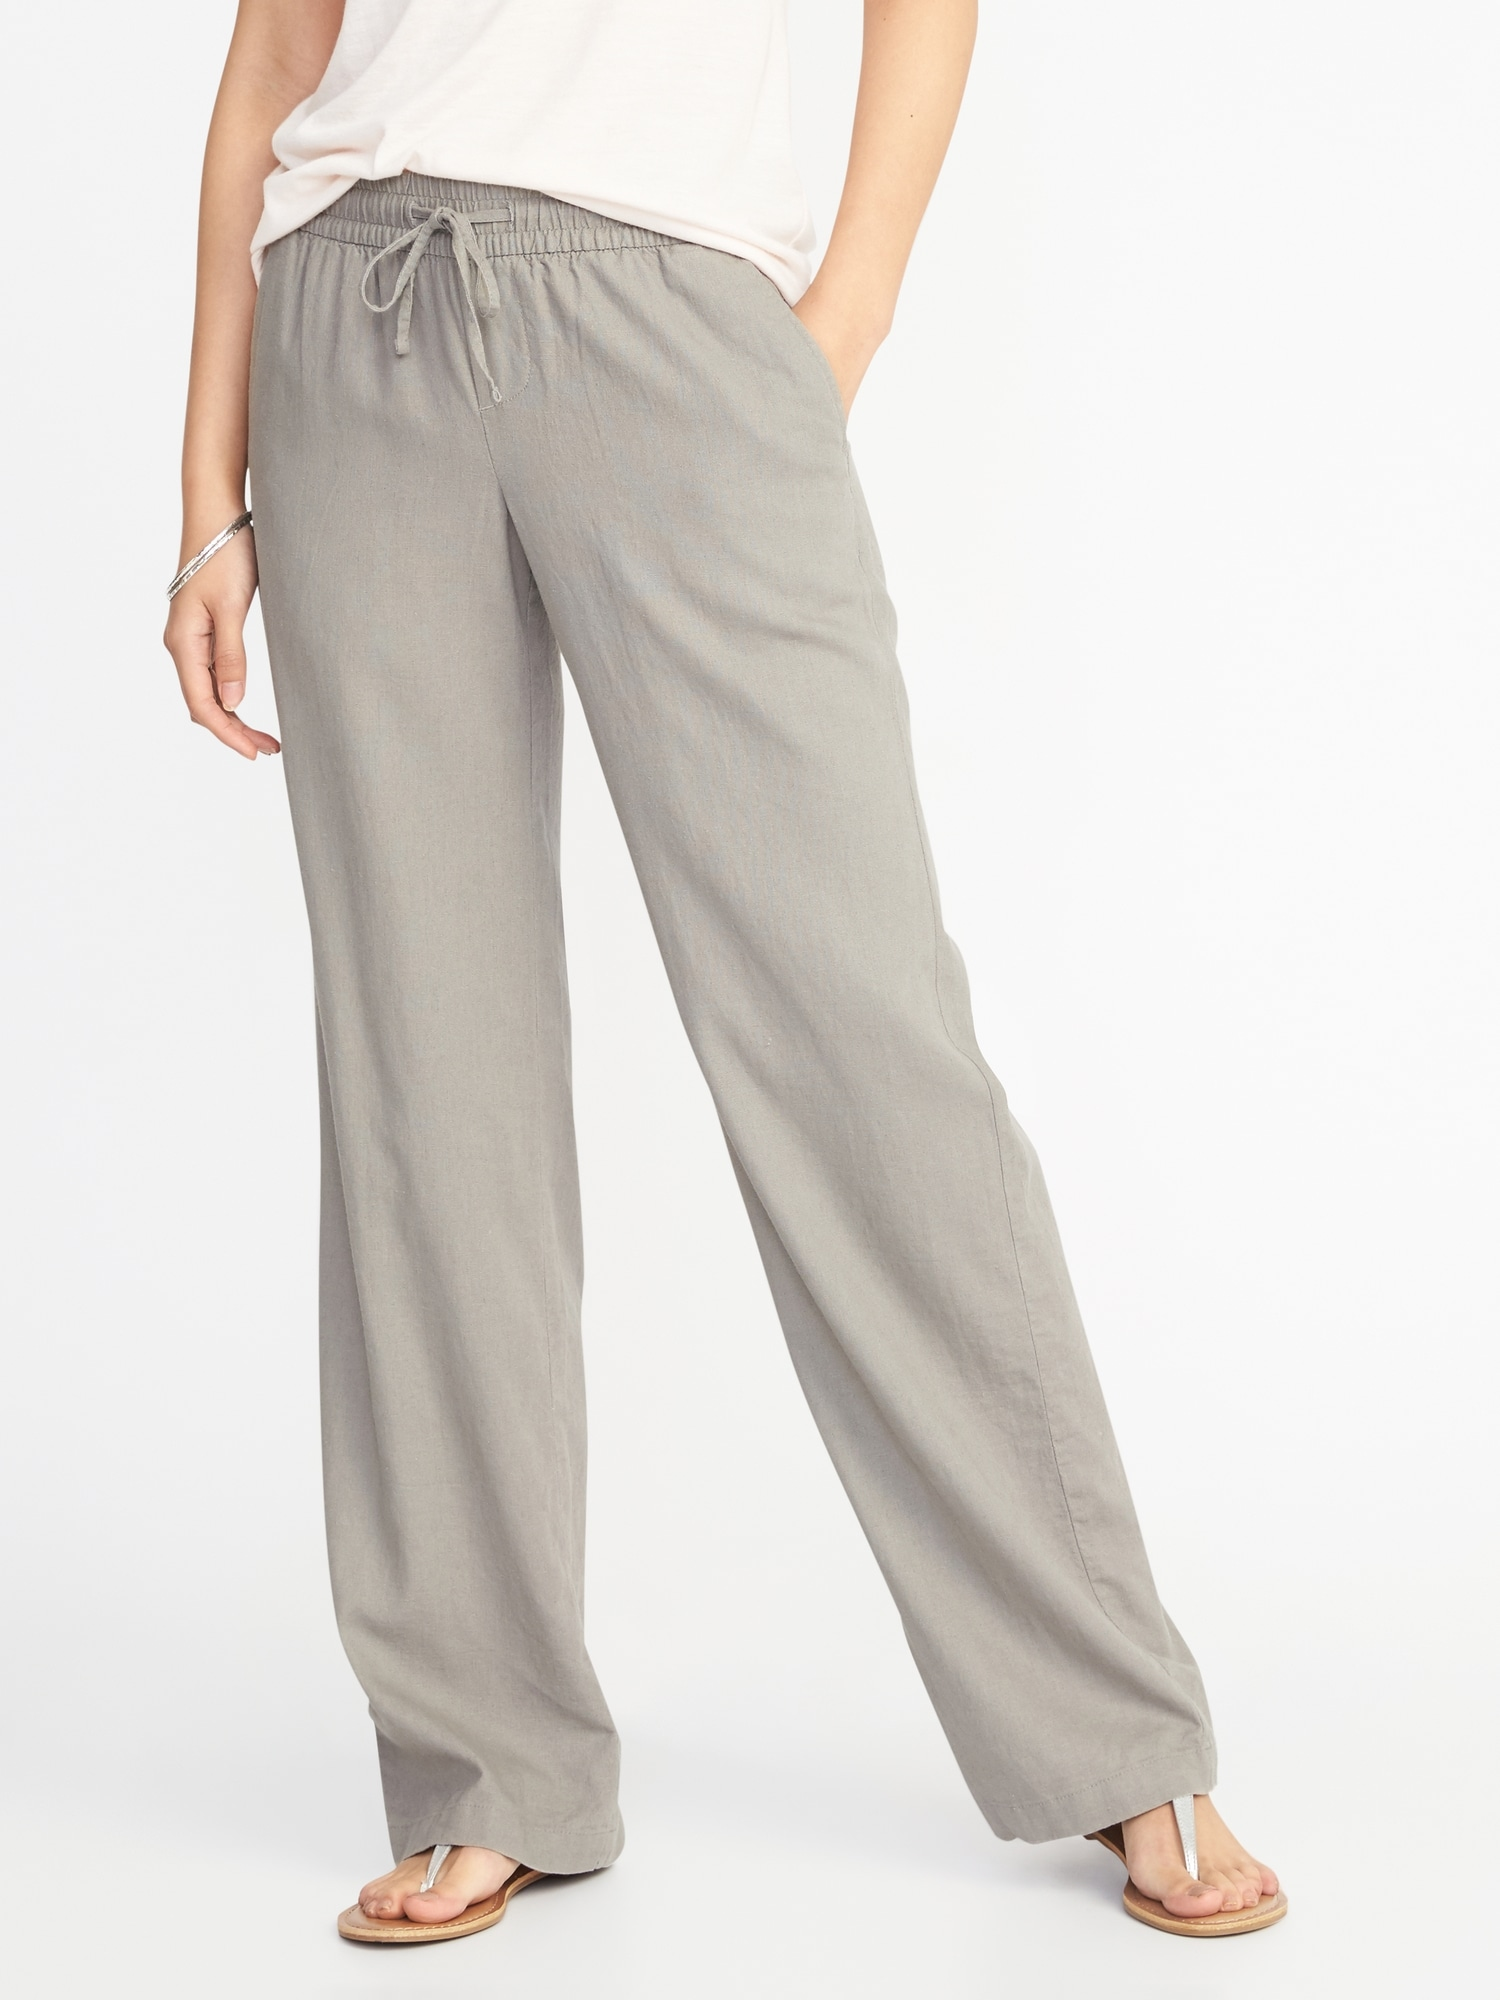 8a02b489c6 Mid-Rise Soft Wide-Leg Linen-Blend Pants for Women | Old Navy